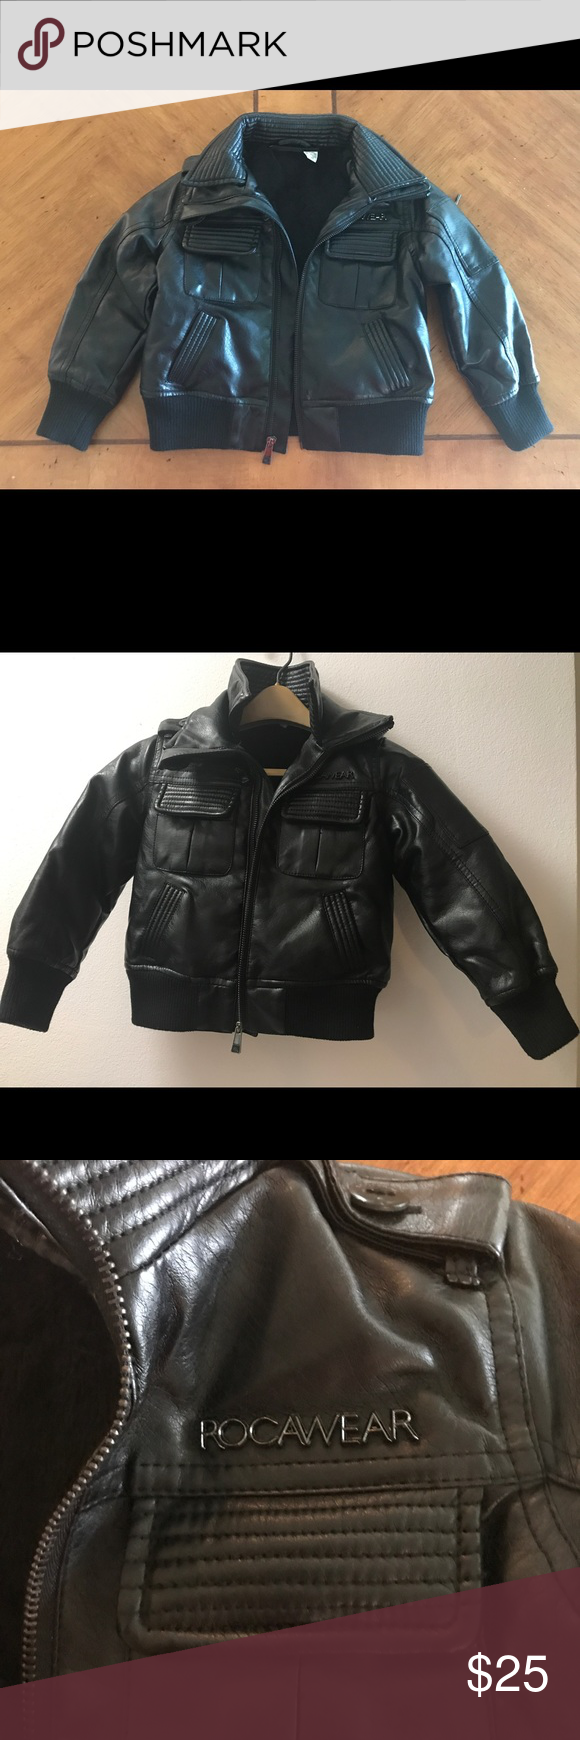 Rocawear Faux Leather Bomber Jacket For Toddler Faux Leather Bomber Jacket Rocawear Jackets [ 1740 x 580 Pixel ]